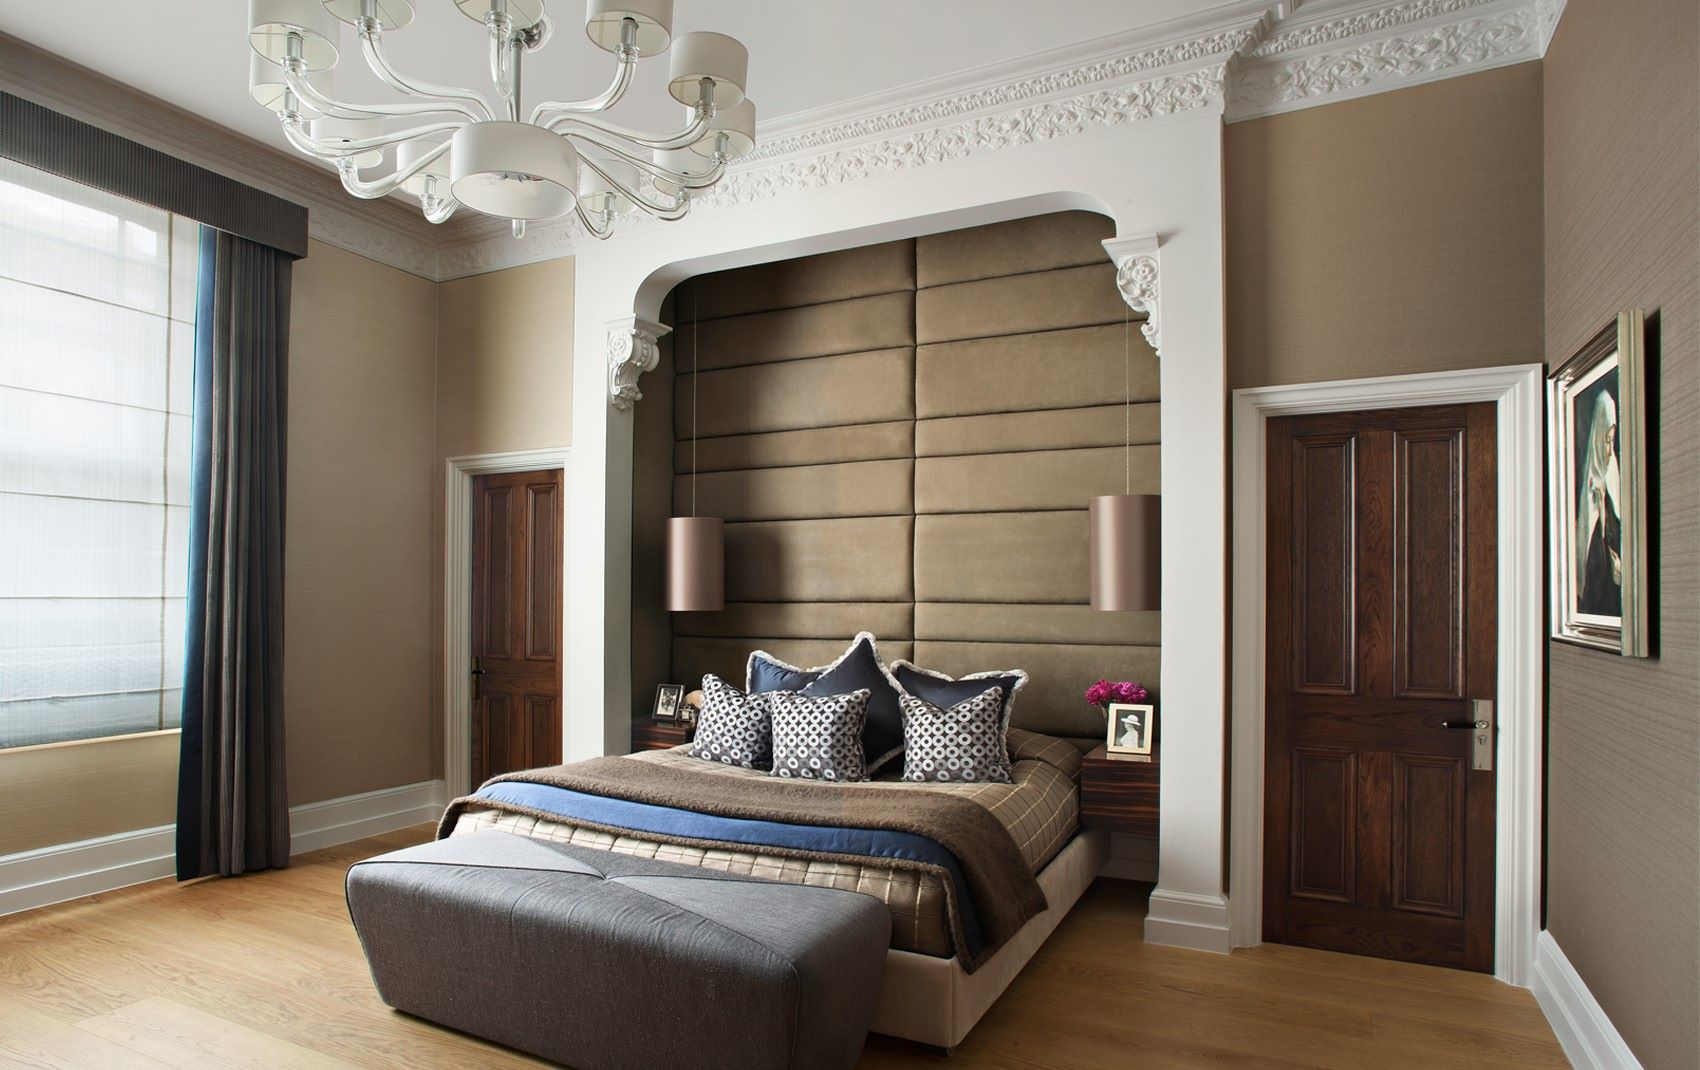 kensington mansion flat - bedroom with built in headboard